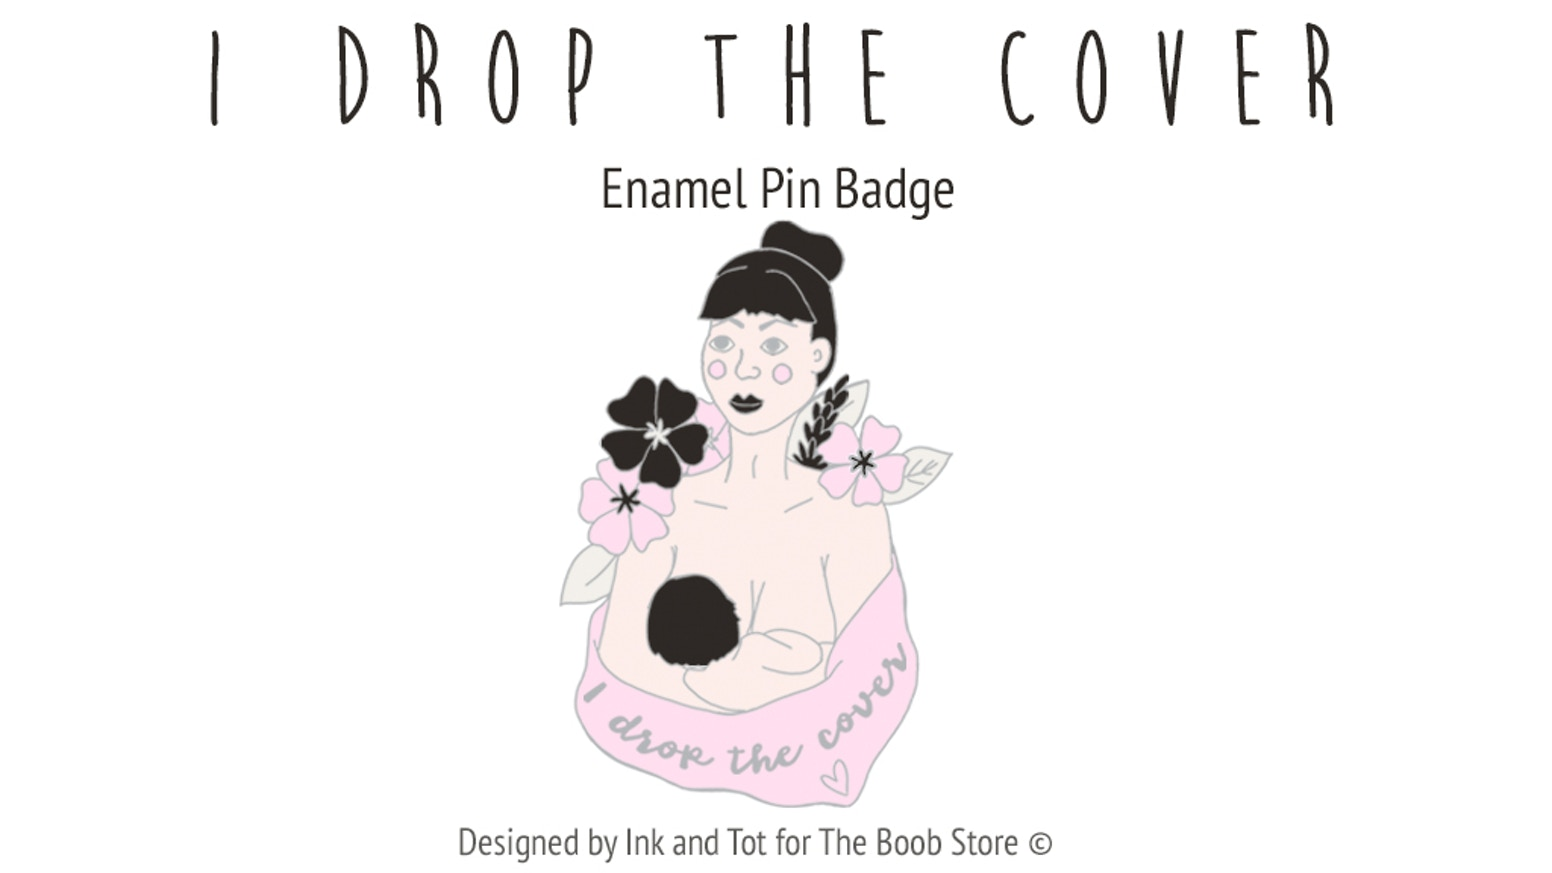 Enamel pin badge to celebrate breastfeeding in public #idropthecover. Here's to cheerleading mums to boob wherever and whenever.